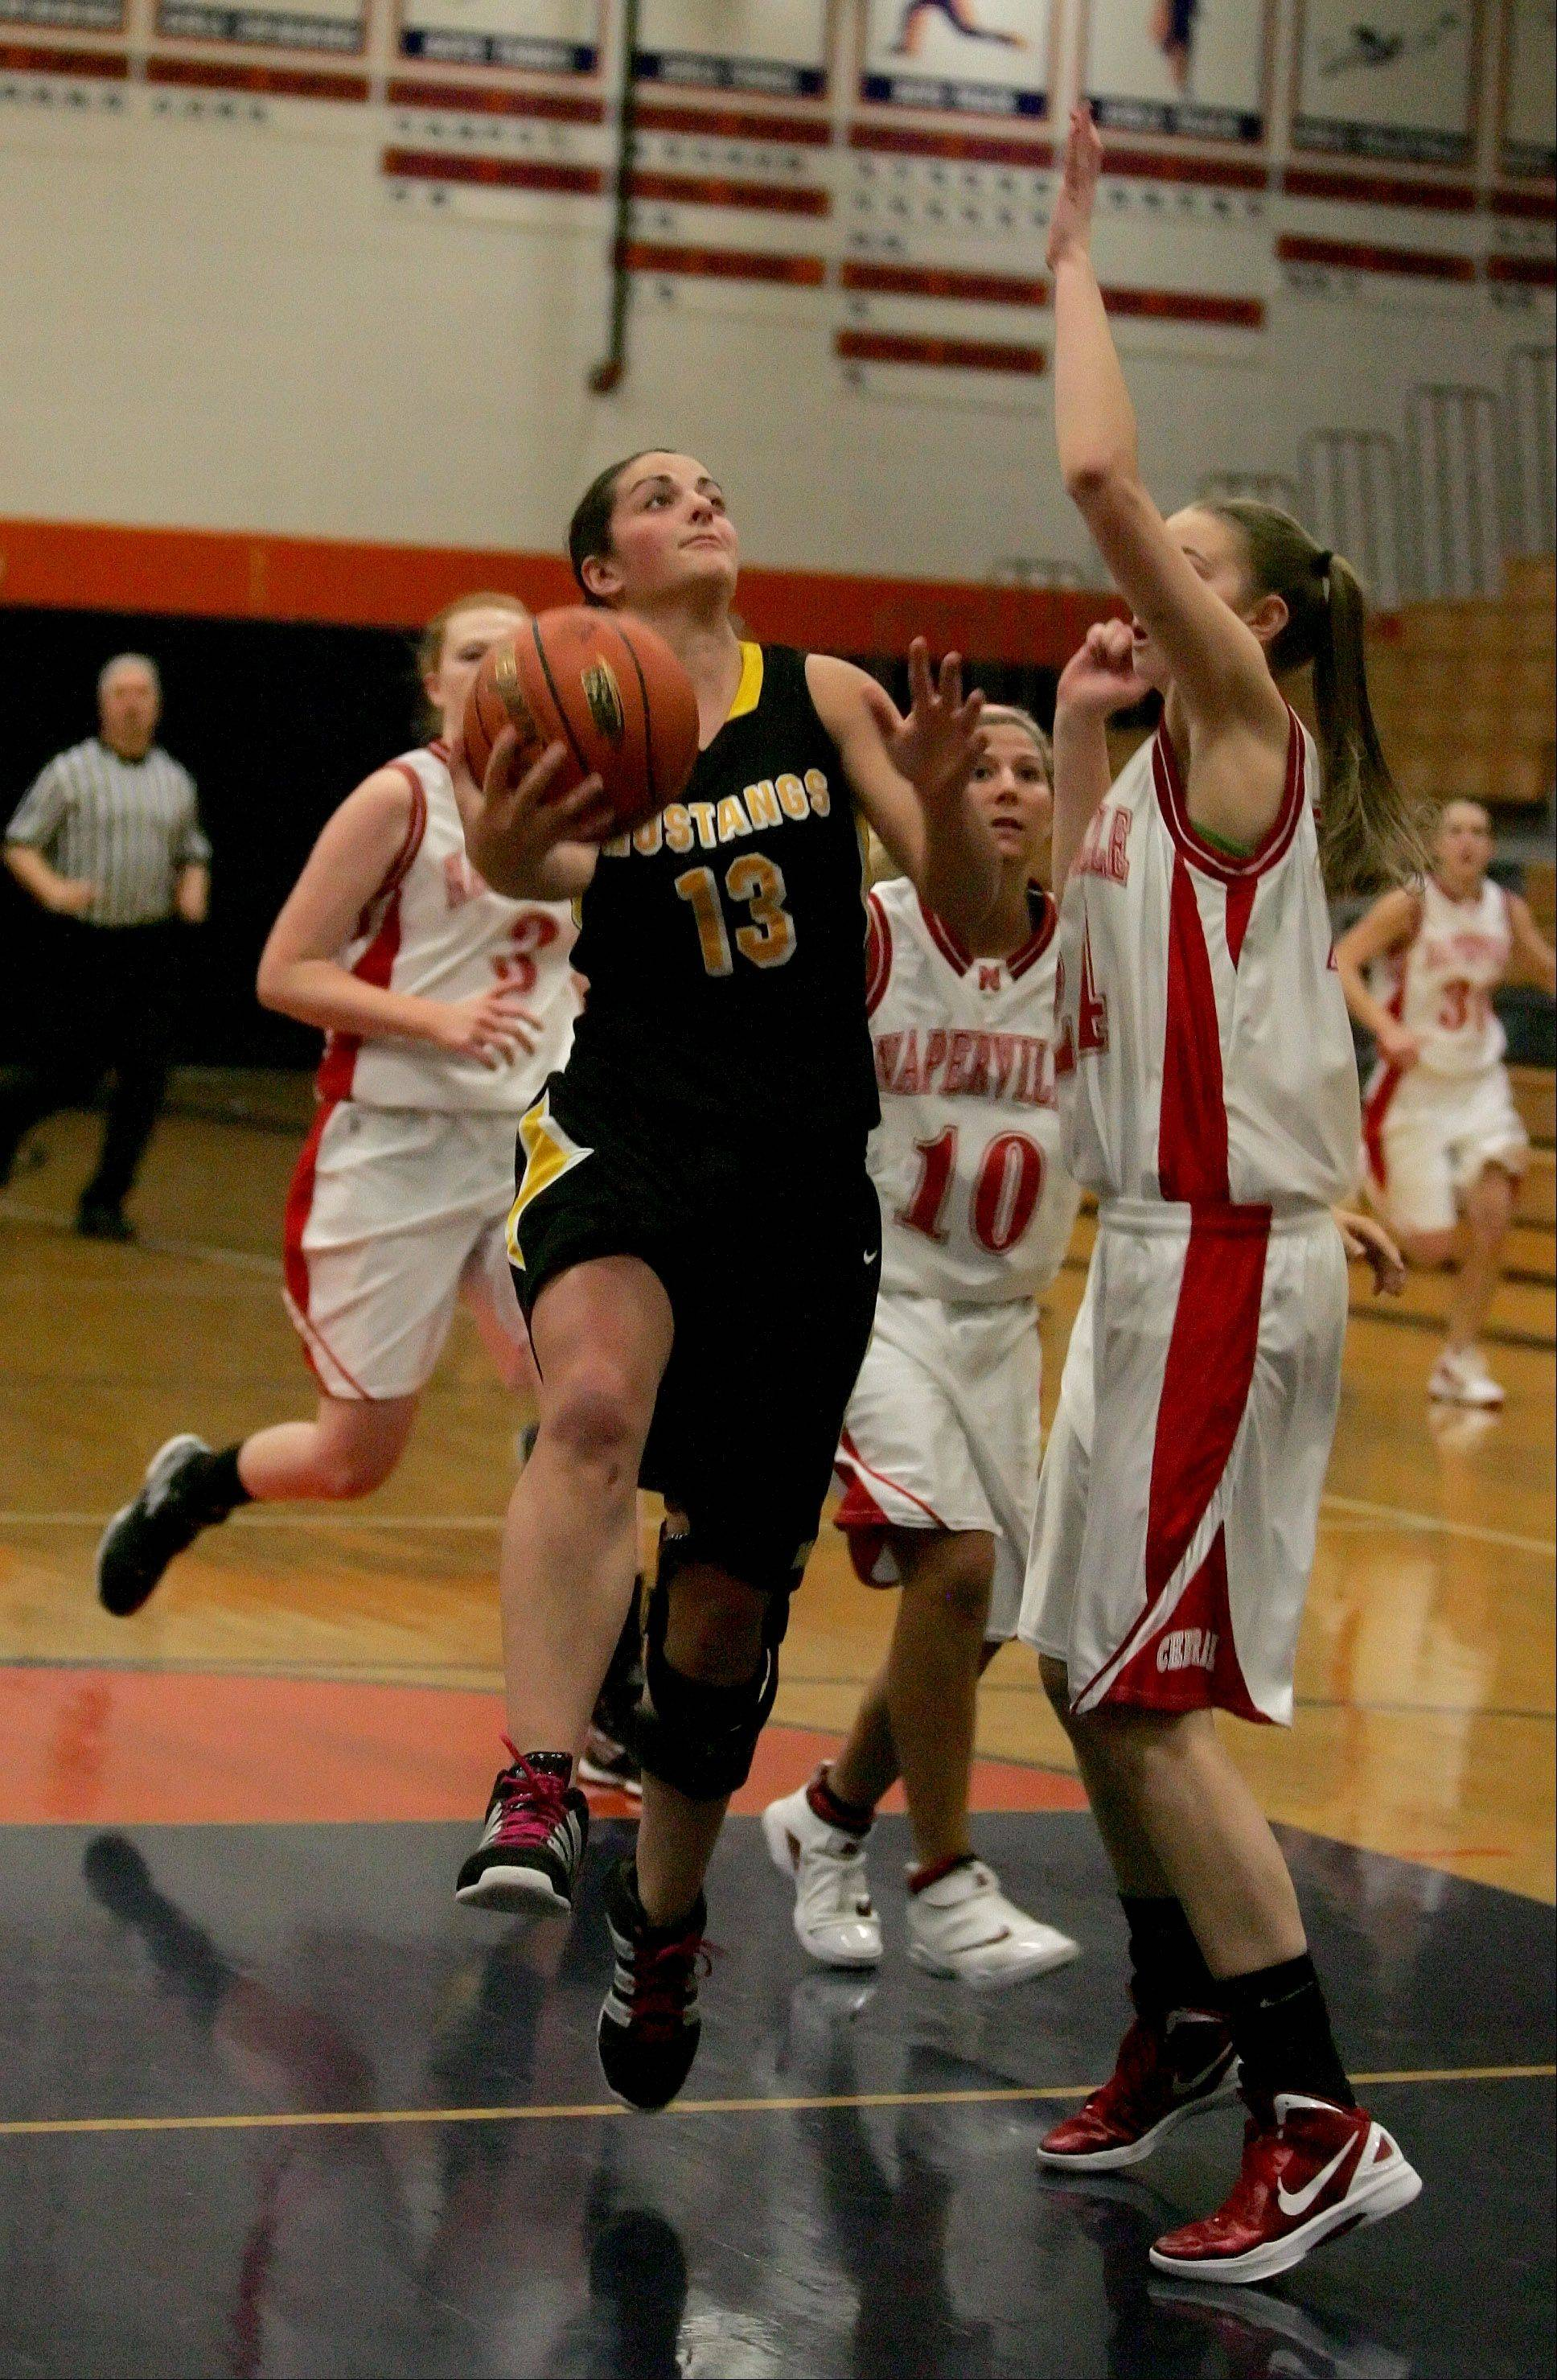 Megan Geldernick of Metea Valley goes up to make a basket against Naperville Central in Class 4A girls basketball regional action in Oswego on Tuesday.